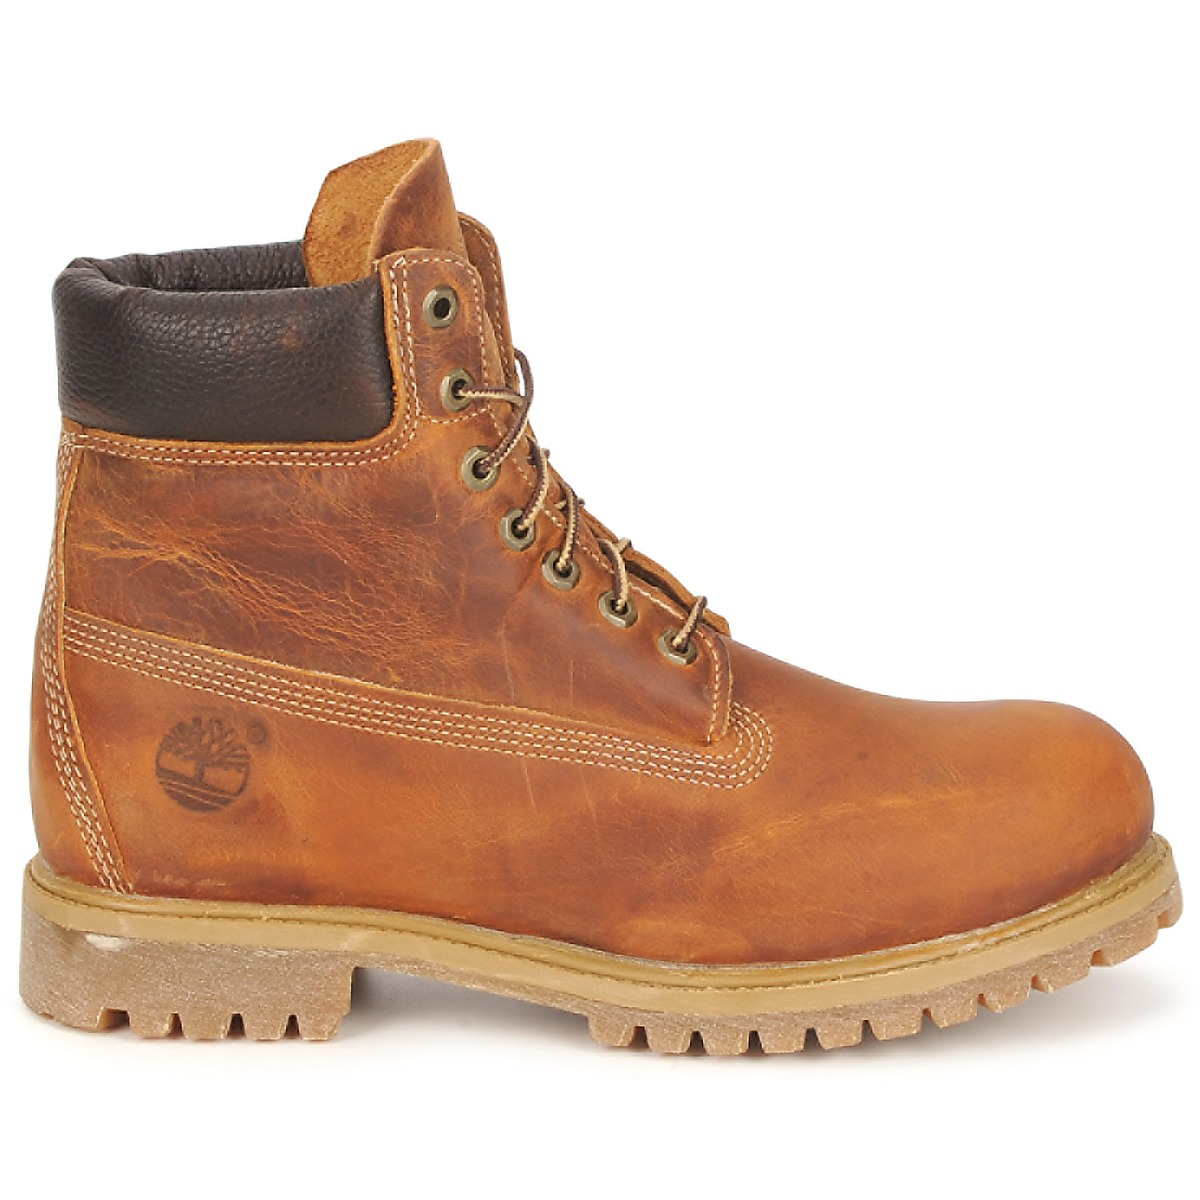 Timberland 6 inch Helcor olx